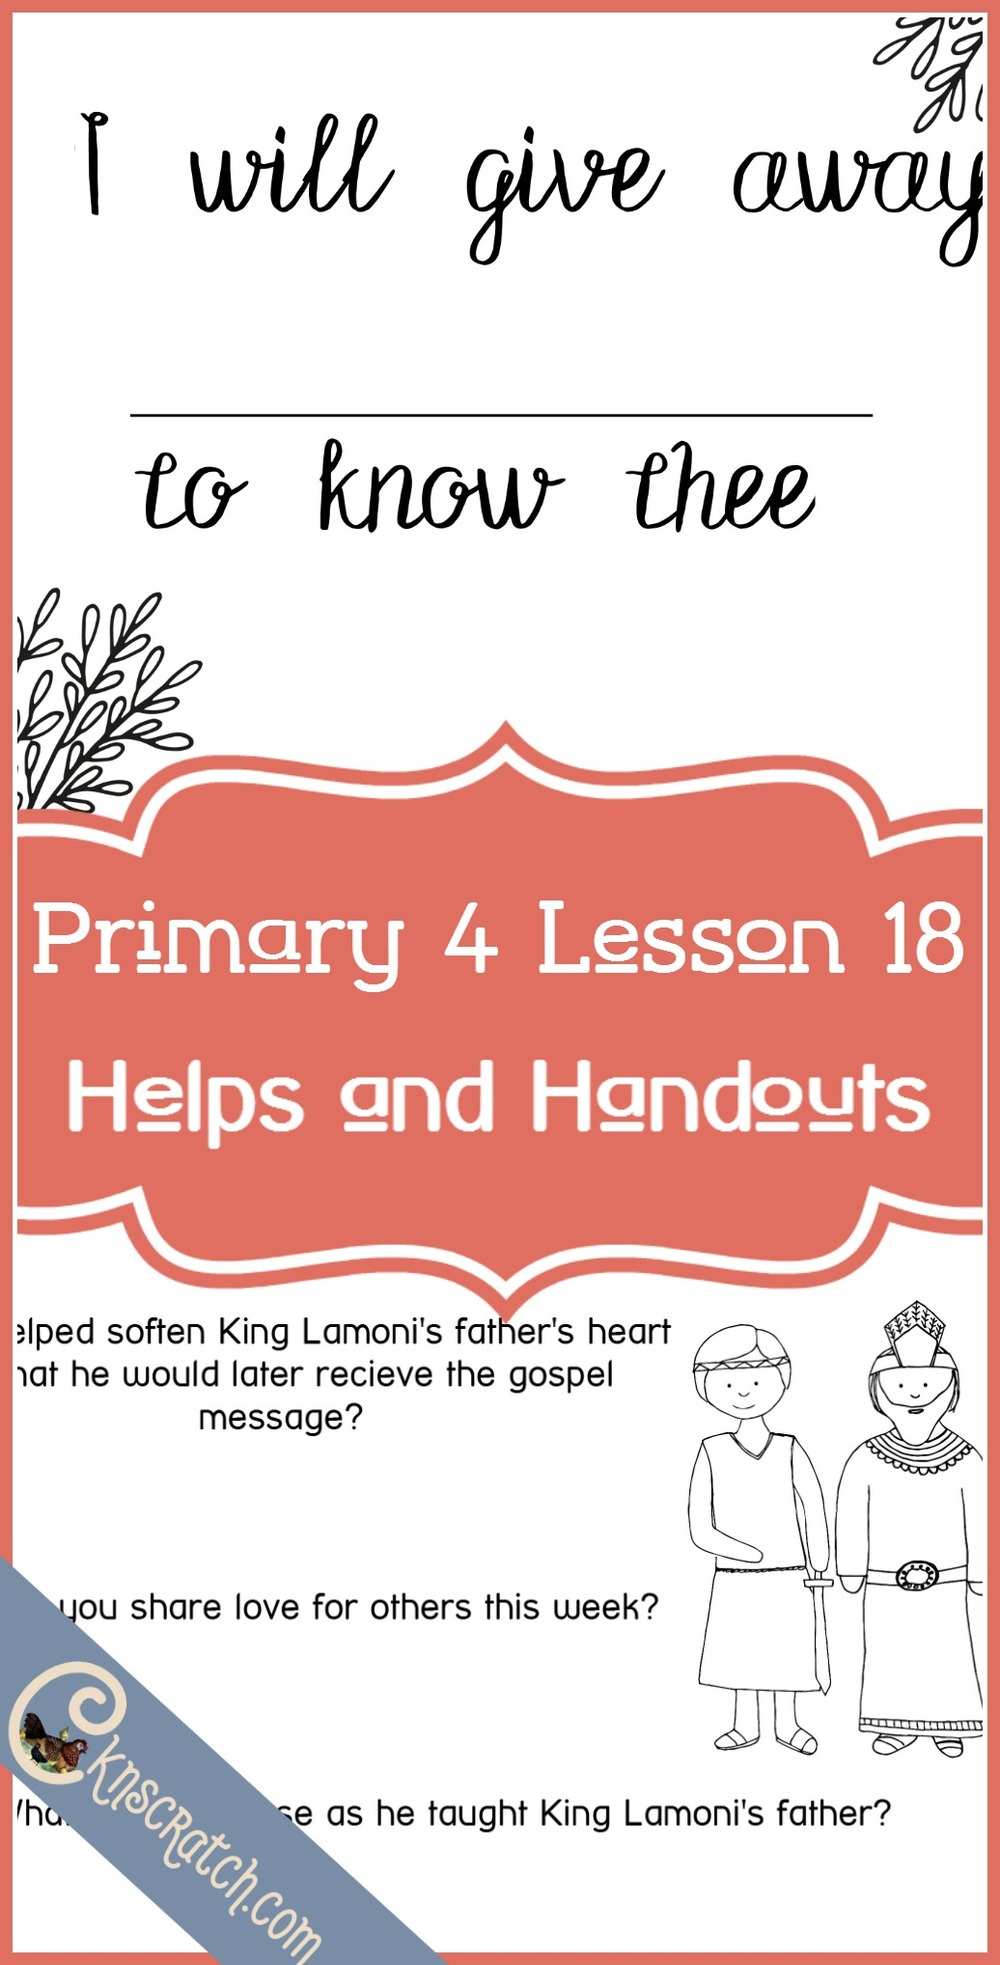 Great LDS handouts and lesson helps for Primary 4 Lesson 18: King Lamoni's Father Is Converted